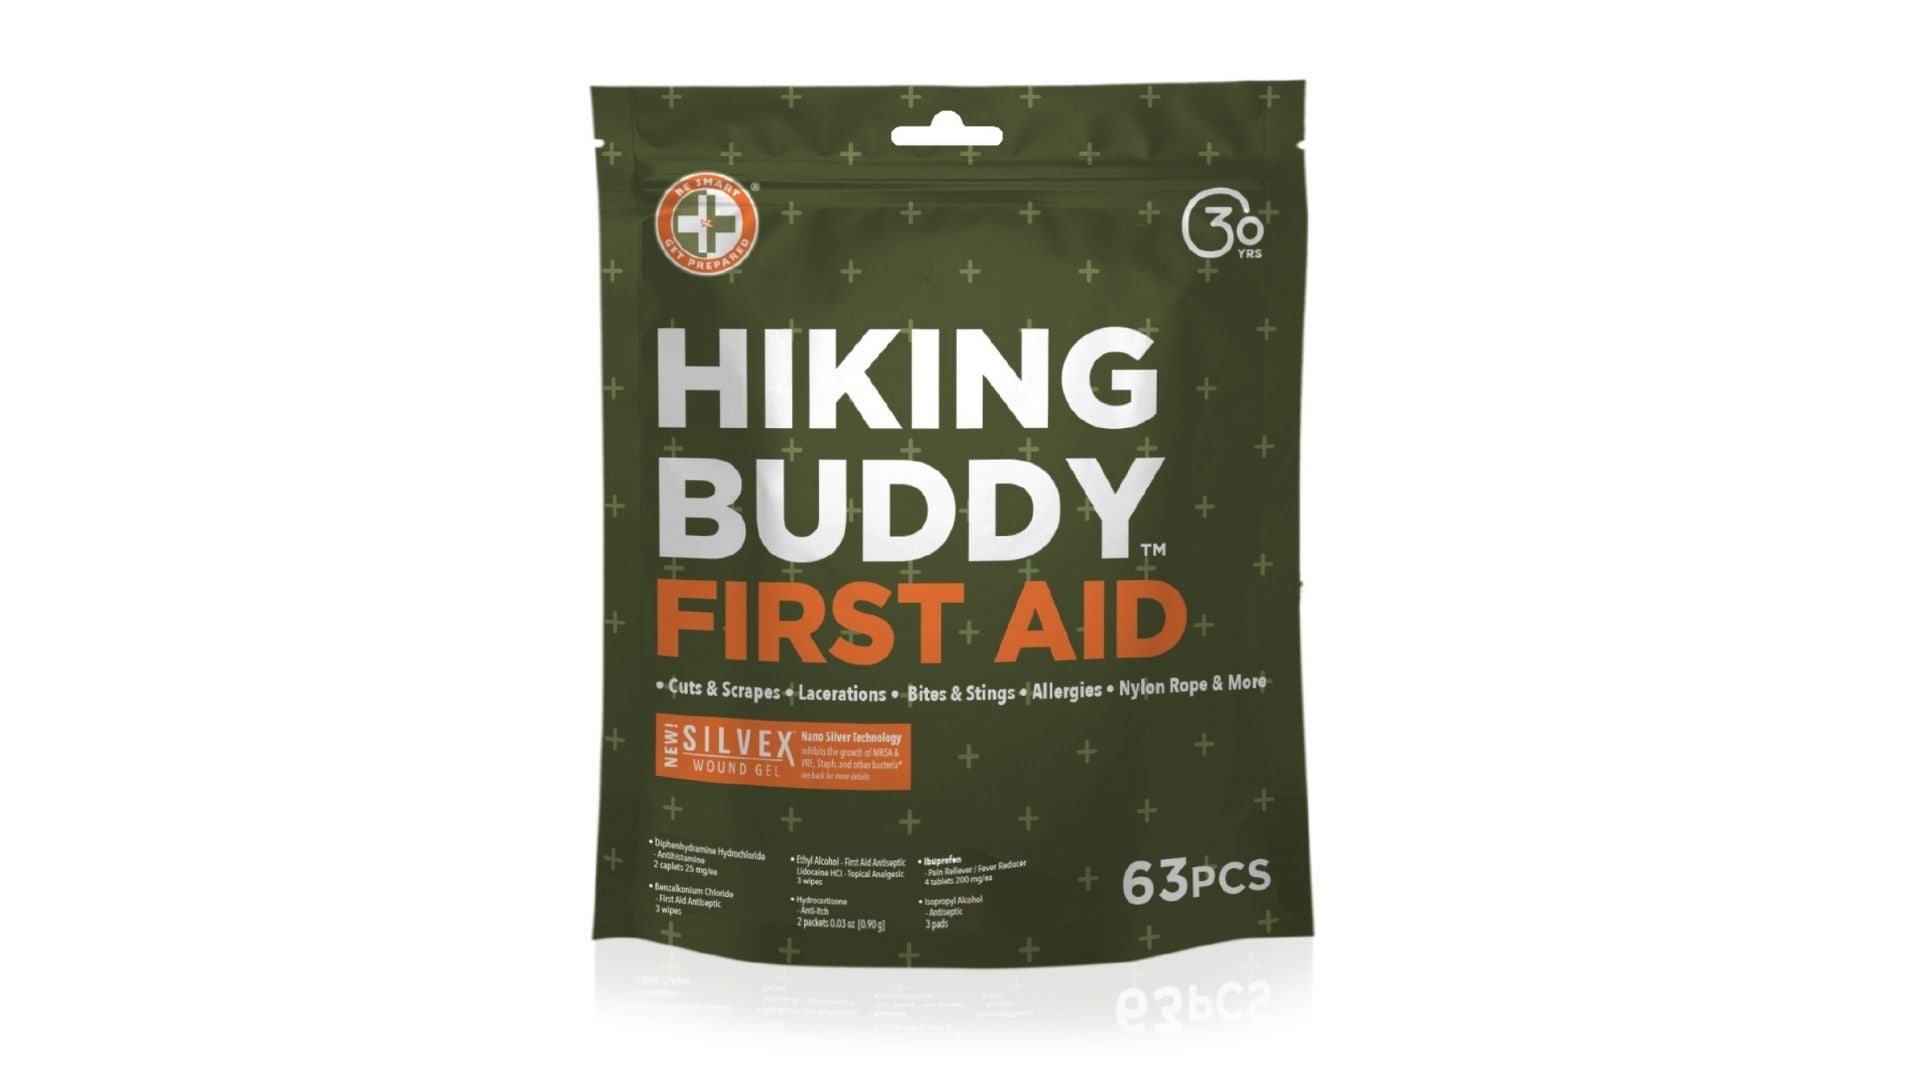 Hiking Buddy First Aid Kit by Be Smart Get Prepared, 65 Pieces